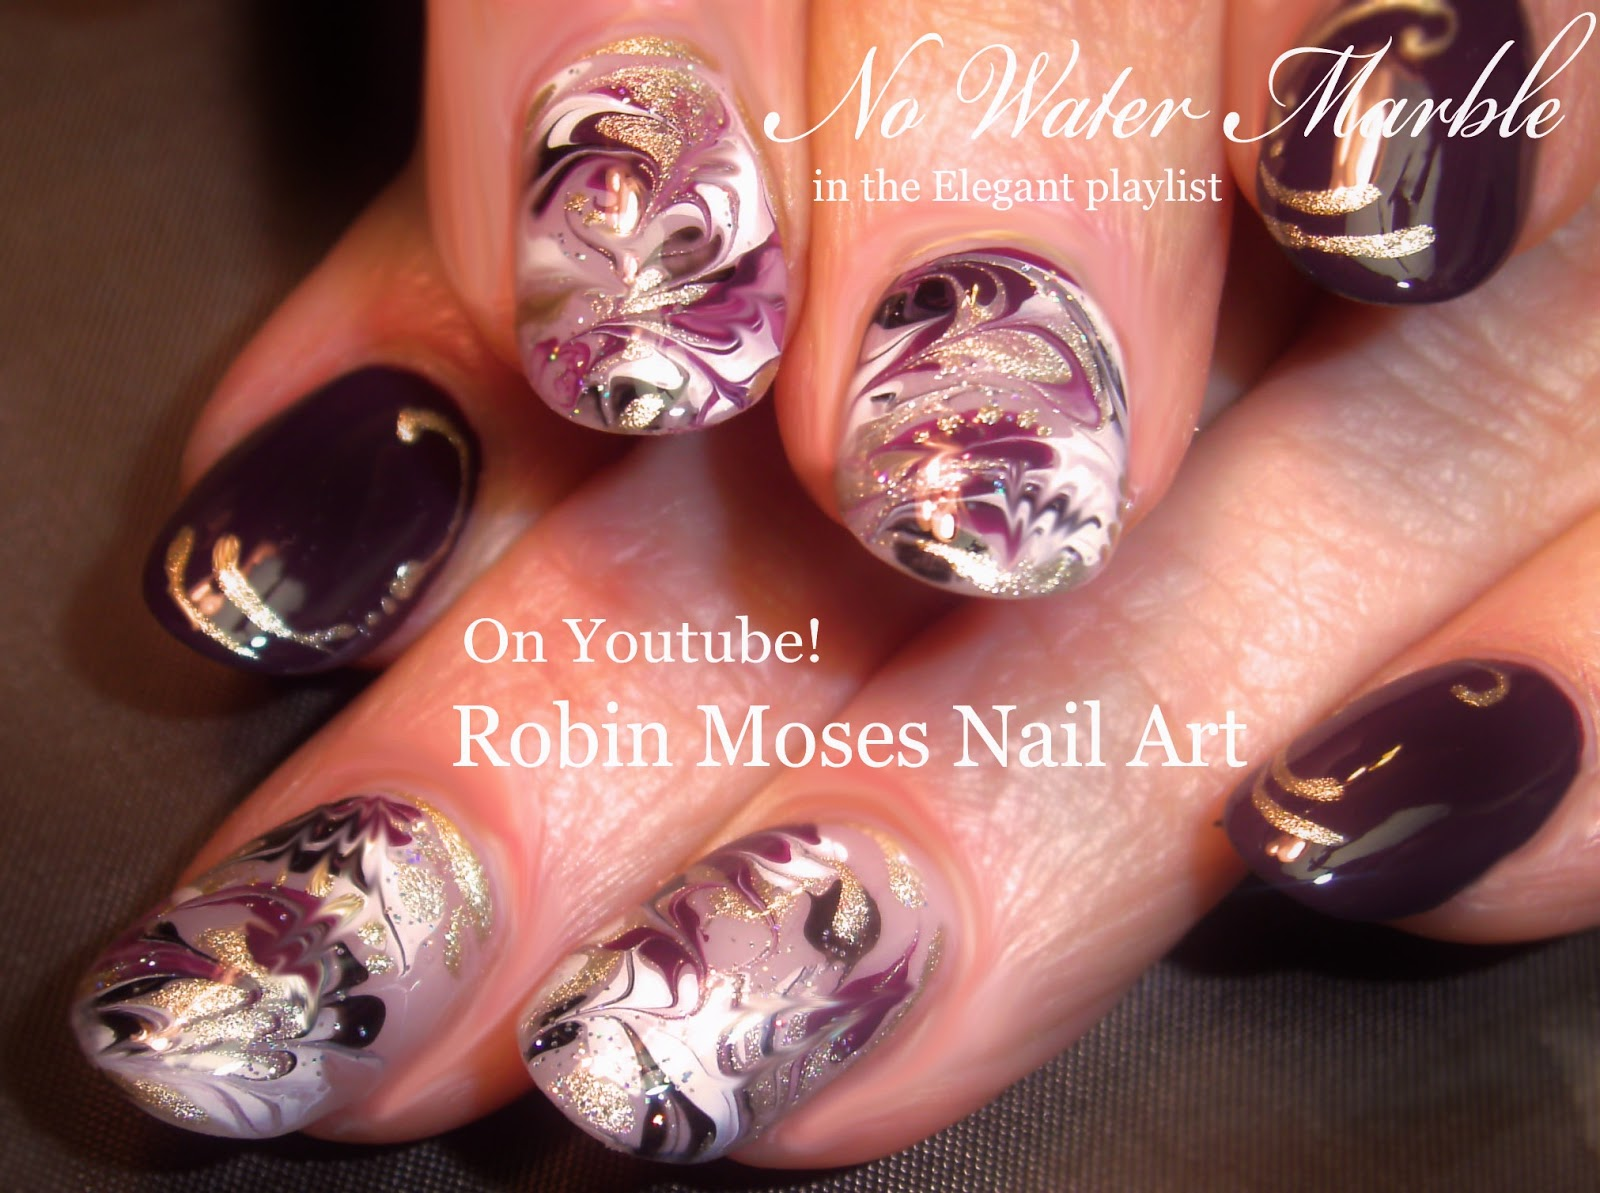 No water marble nail art gallery nail art and nail design ideas robin moses nail art marble nails with no water needed no water no water needed marble prinsesfo Image collections